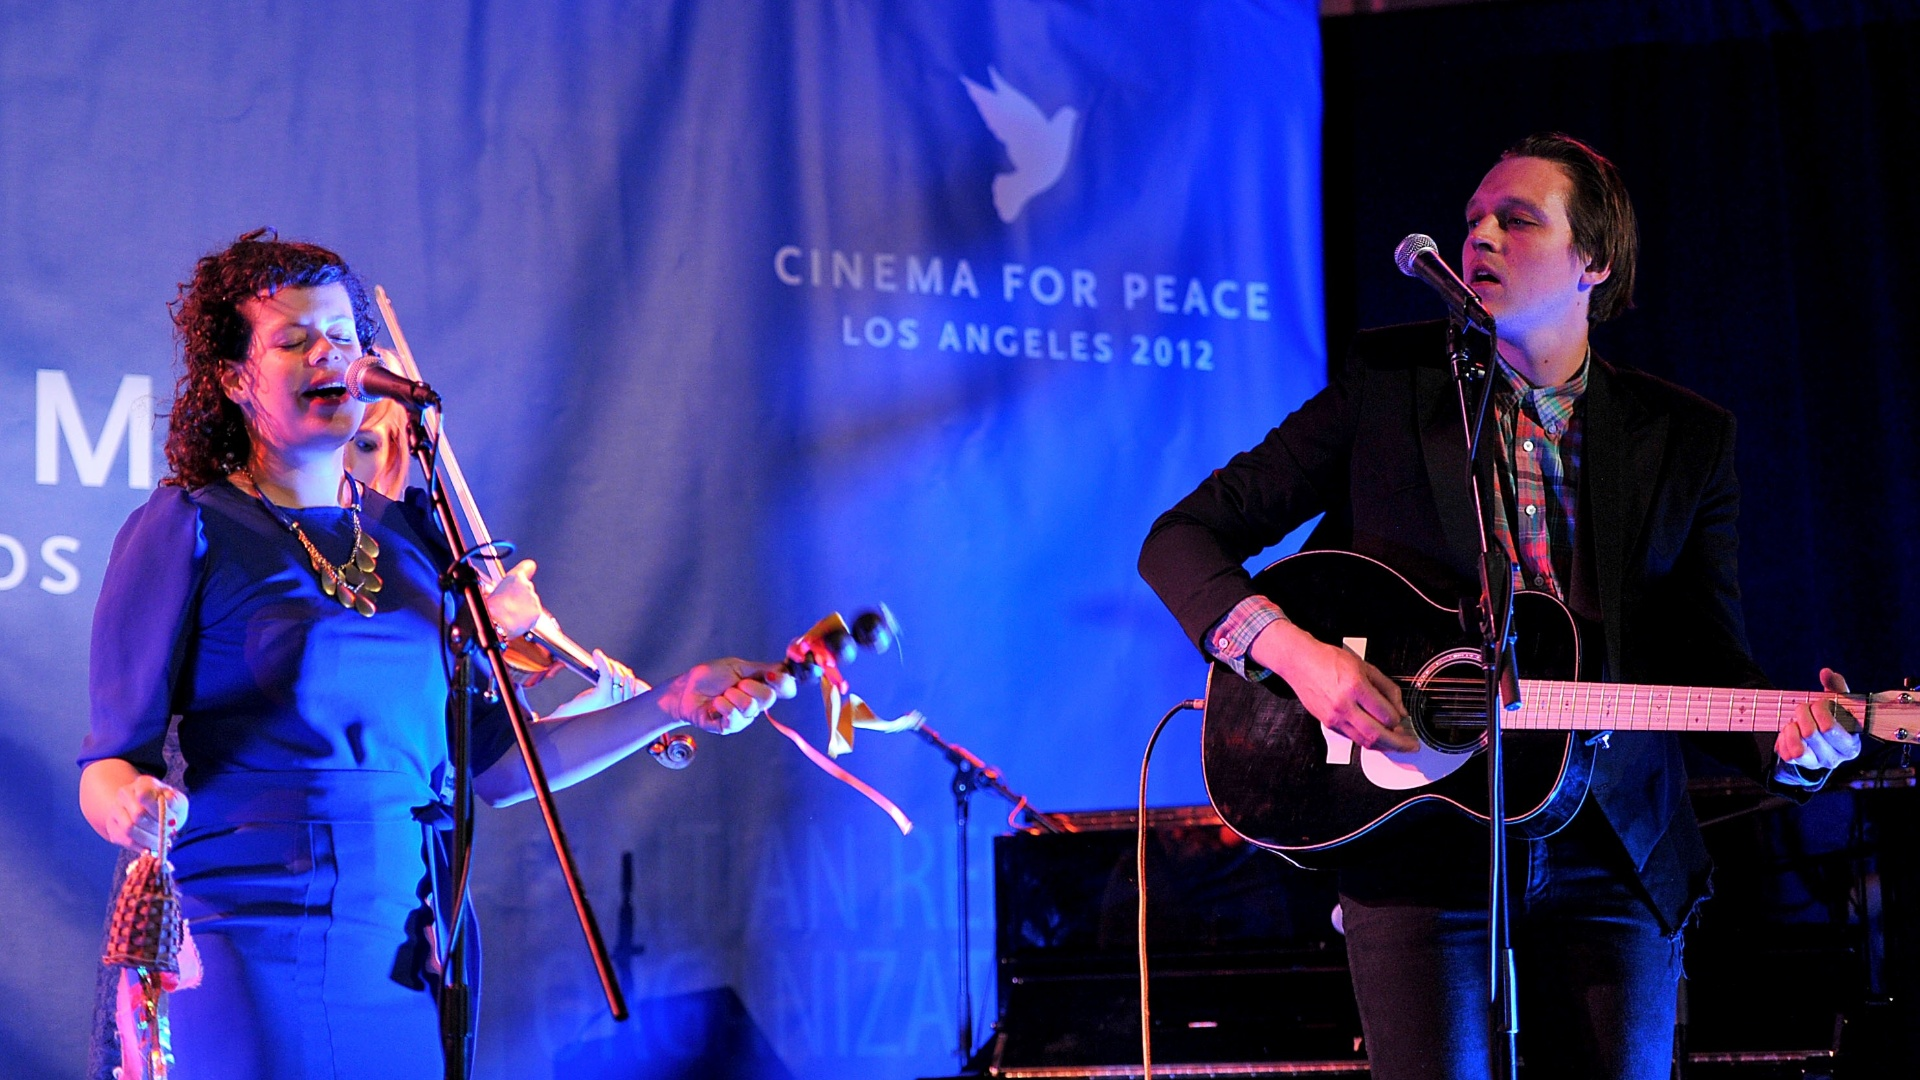 14.jan.2012 - Regine Chassagne e Win Butler, do Arcade Fire, se apresentam no evento Cinema For Peace